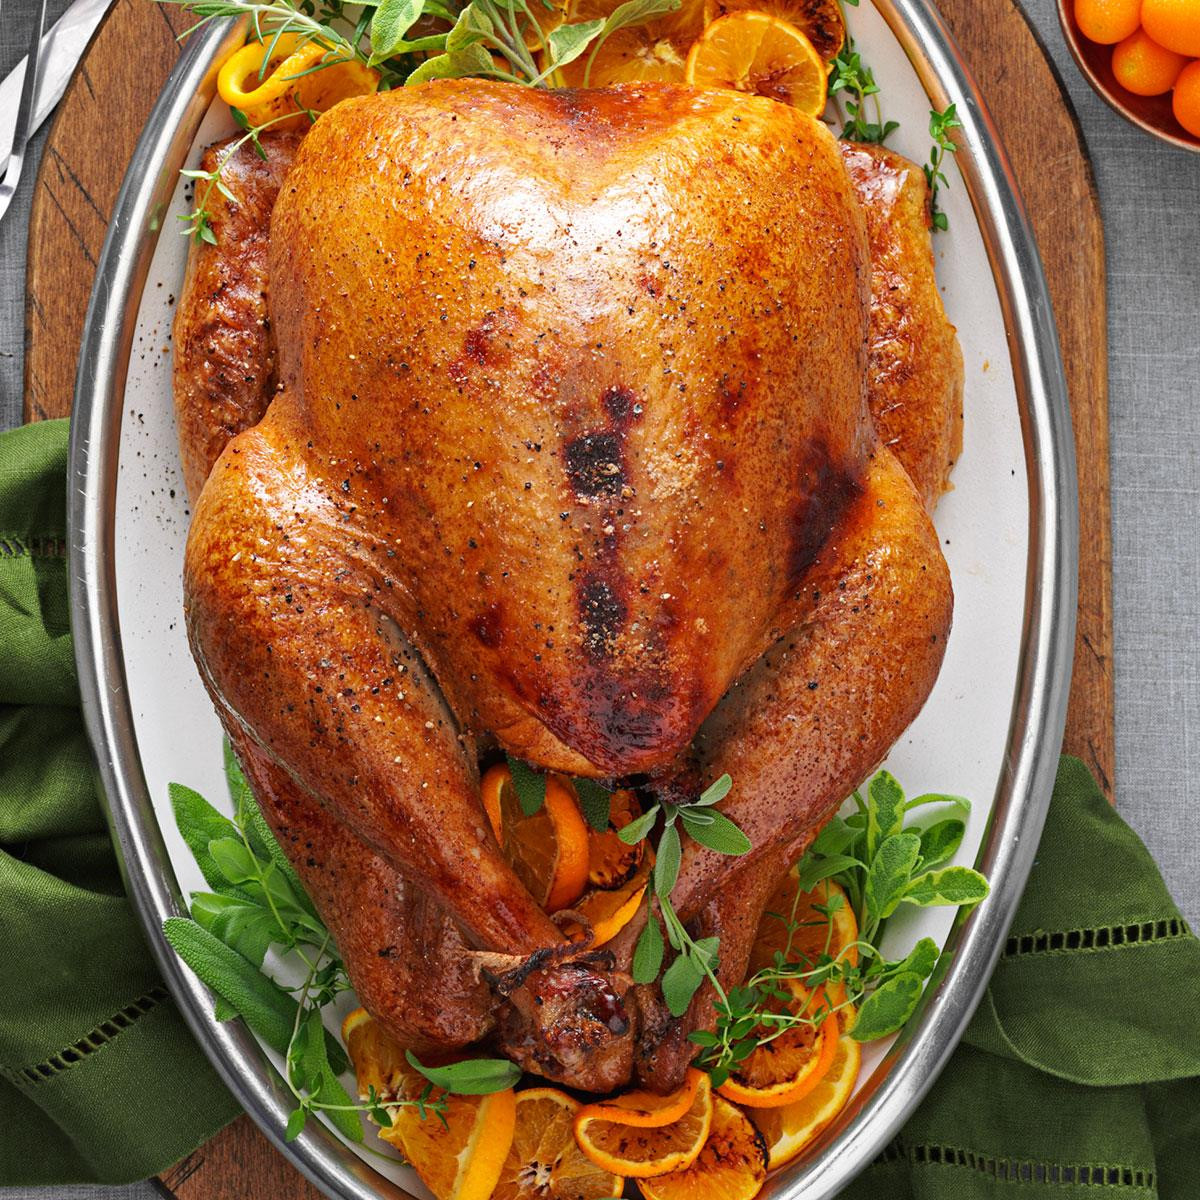 Delicious Turkey Recipes For Thanksgiving  Find Recipes Appetizers Desserts Holiday Recipes